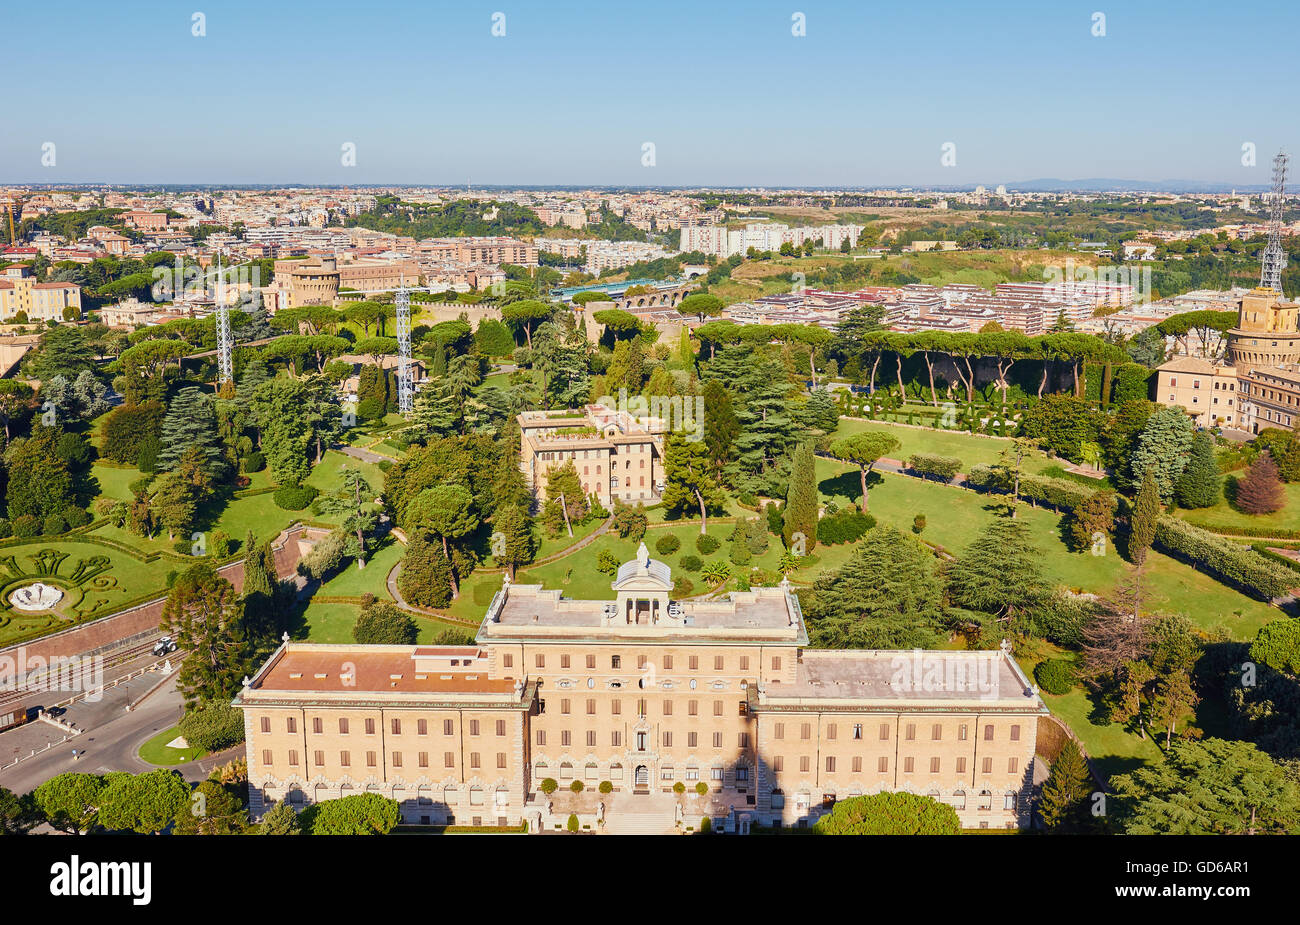 Panorama of Rome from dome of St Peter's Basilica Lazio Italy Europe - Stock Image